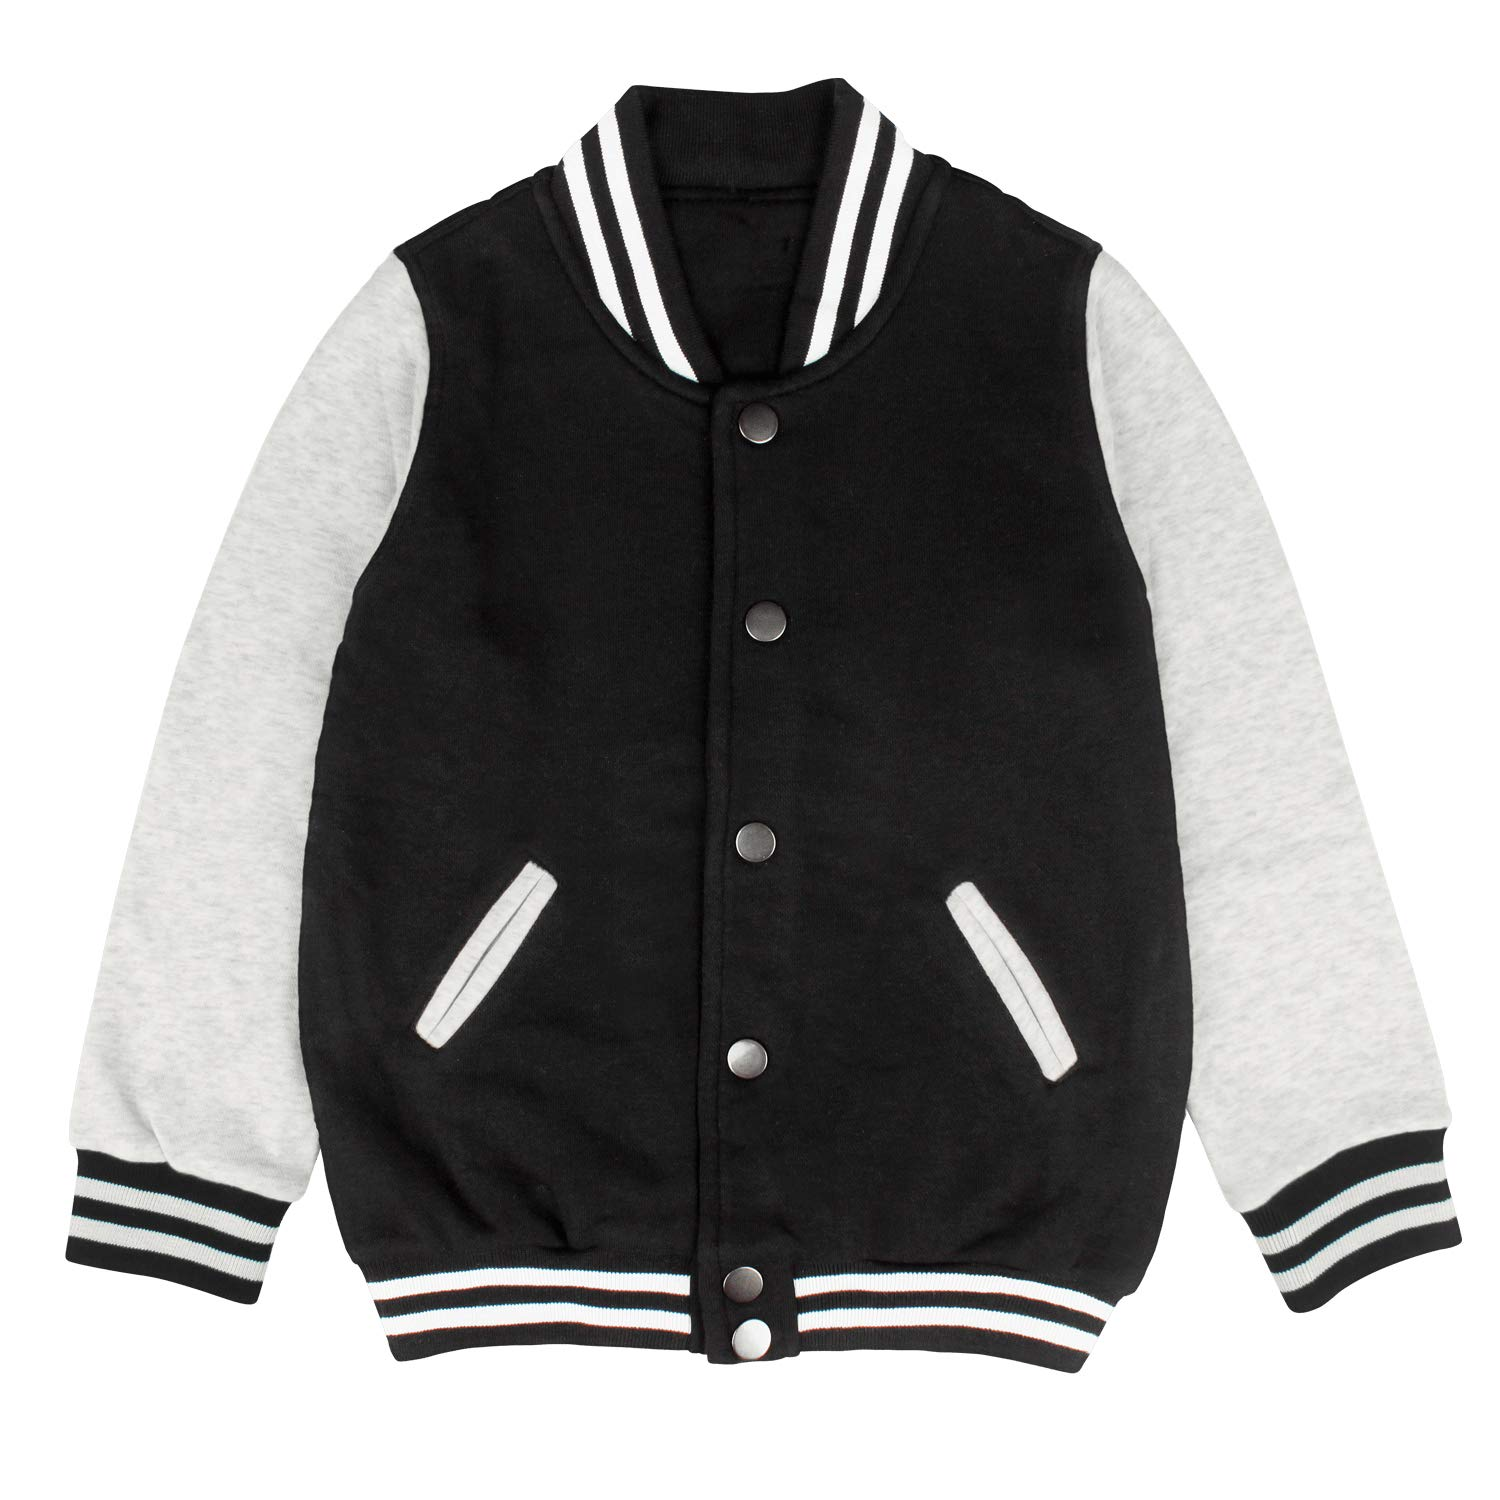 epoyseretrtgty Autumn Boys Girls Winter Beauty or Skeleton Casual Slim Baseball Jacket Hoodie